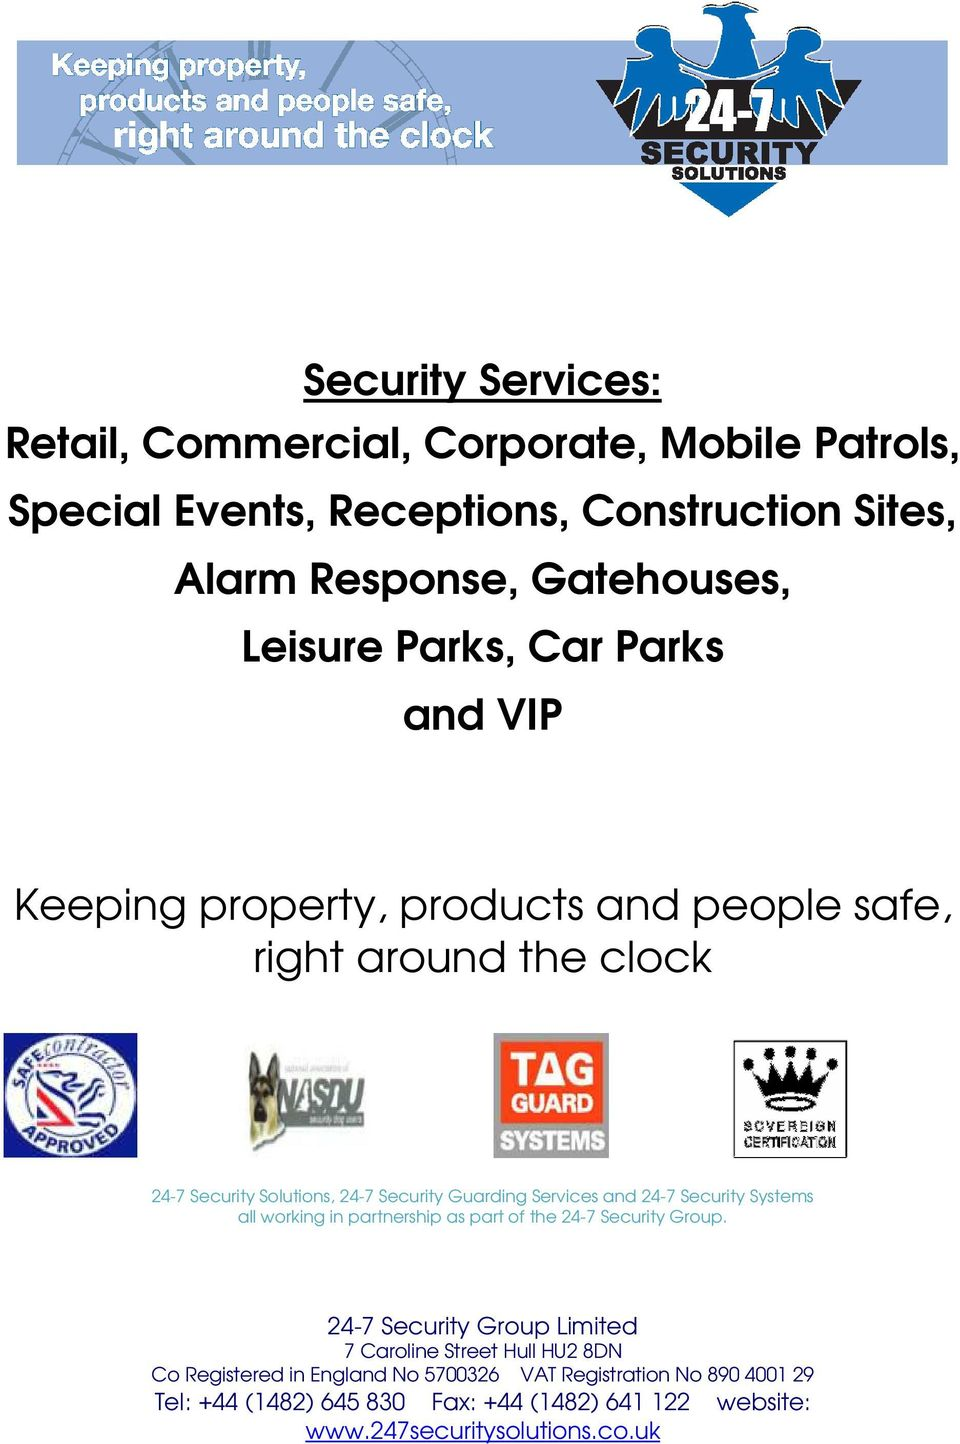 and 24-7 Security Systems all working in partnership as part of the 24-7 Security Group.